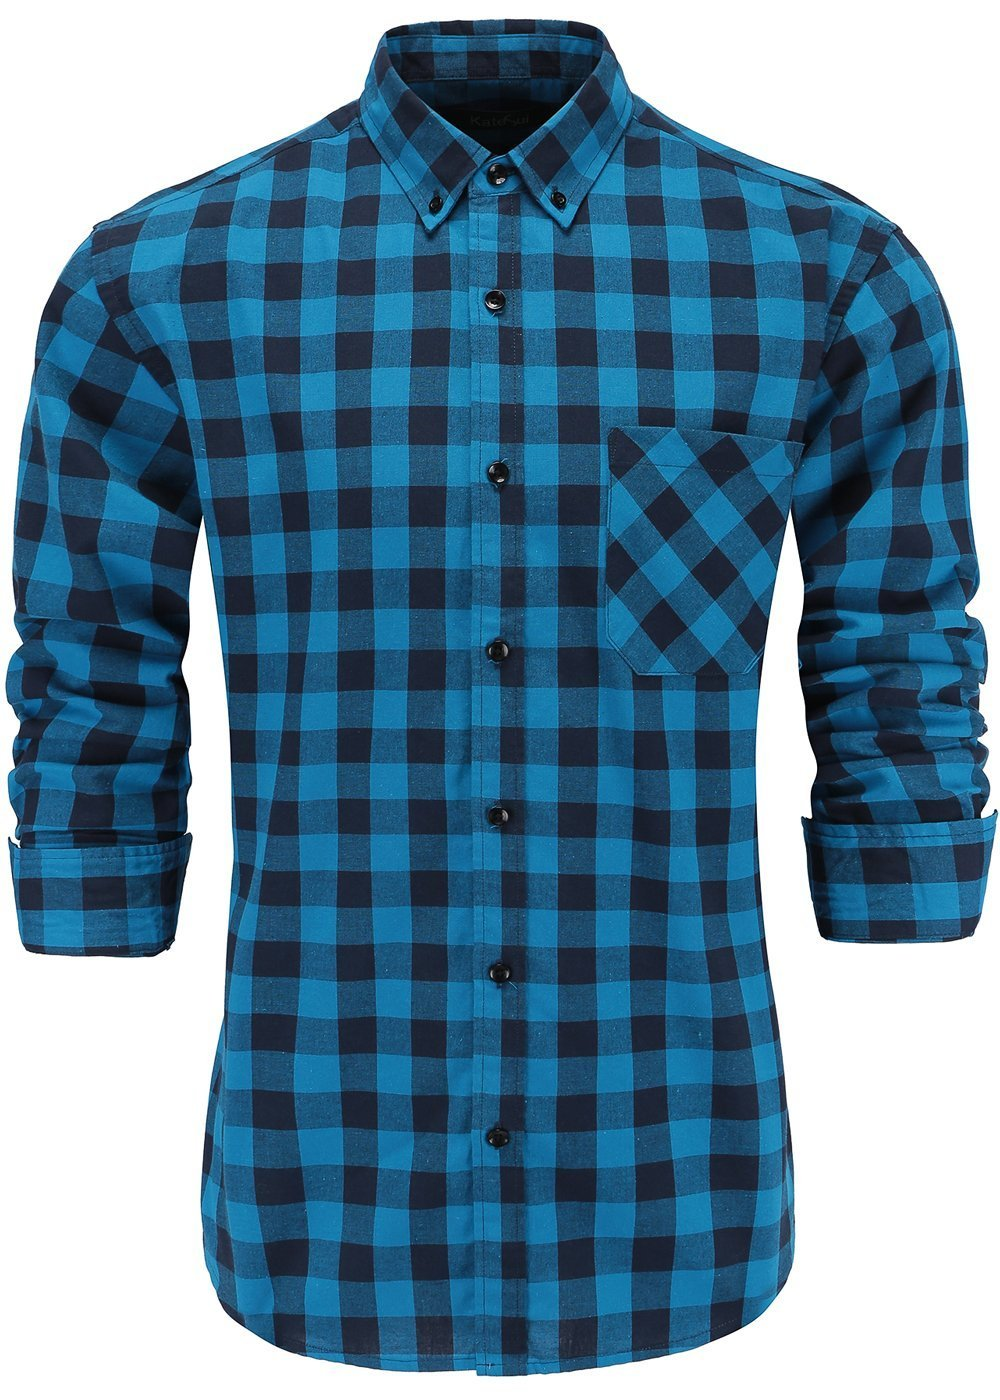 KateSui Mens Slim Fit Long Sleeve Button-Down Plaid Dress Shirt Large Blue Black